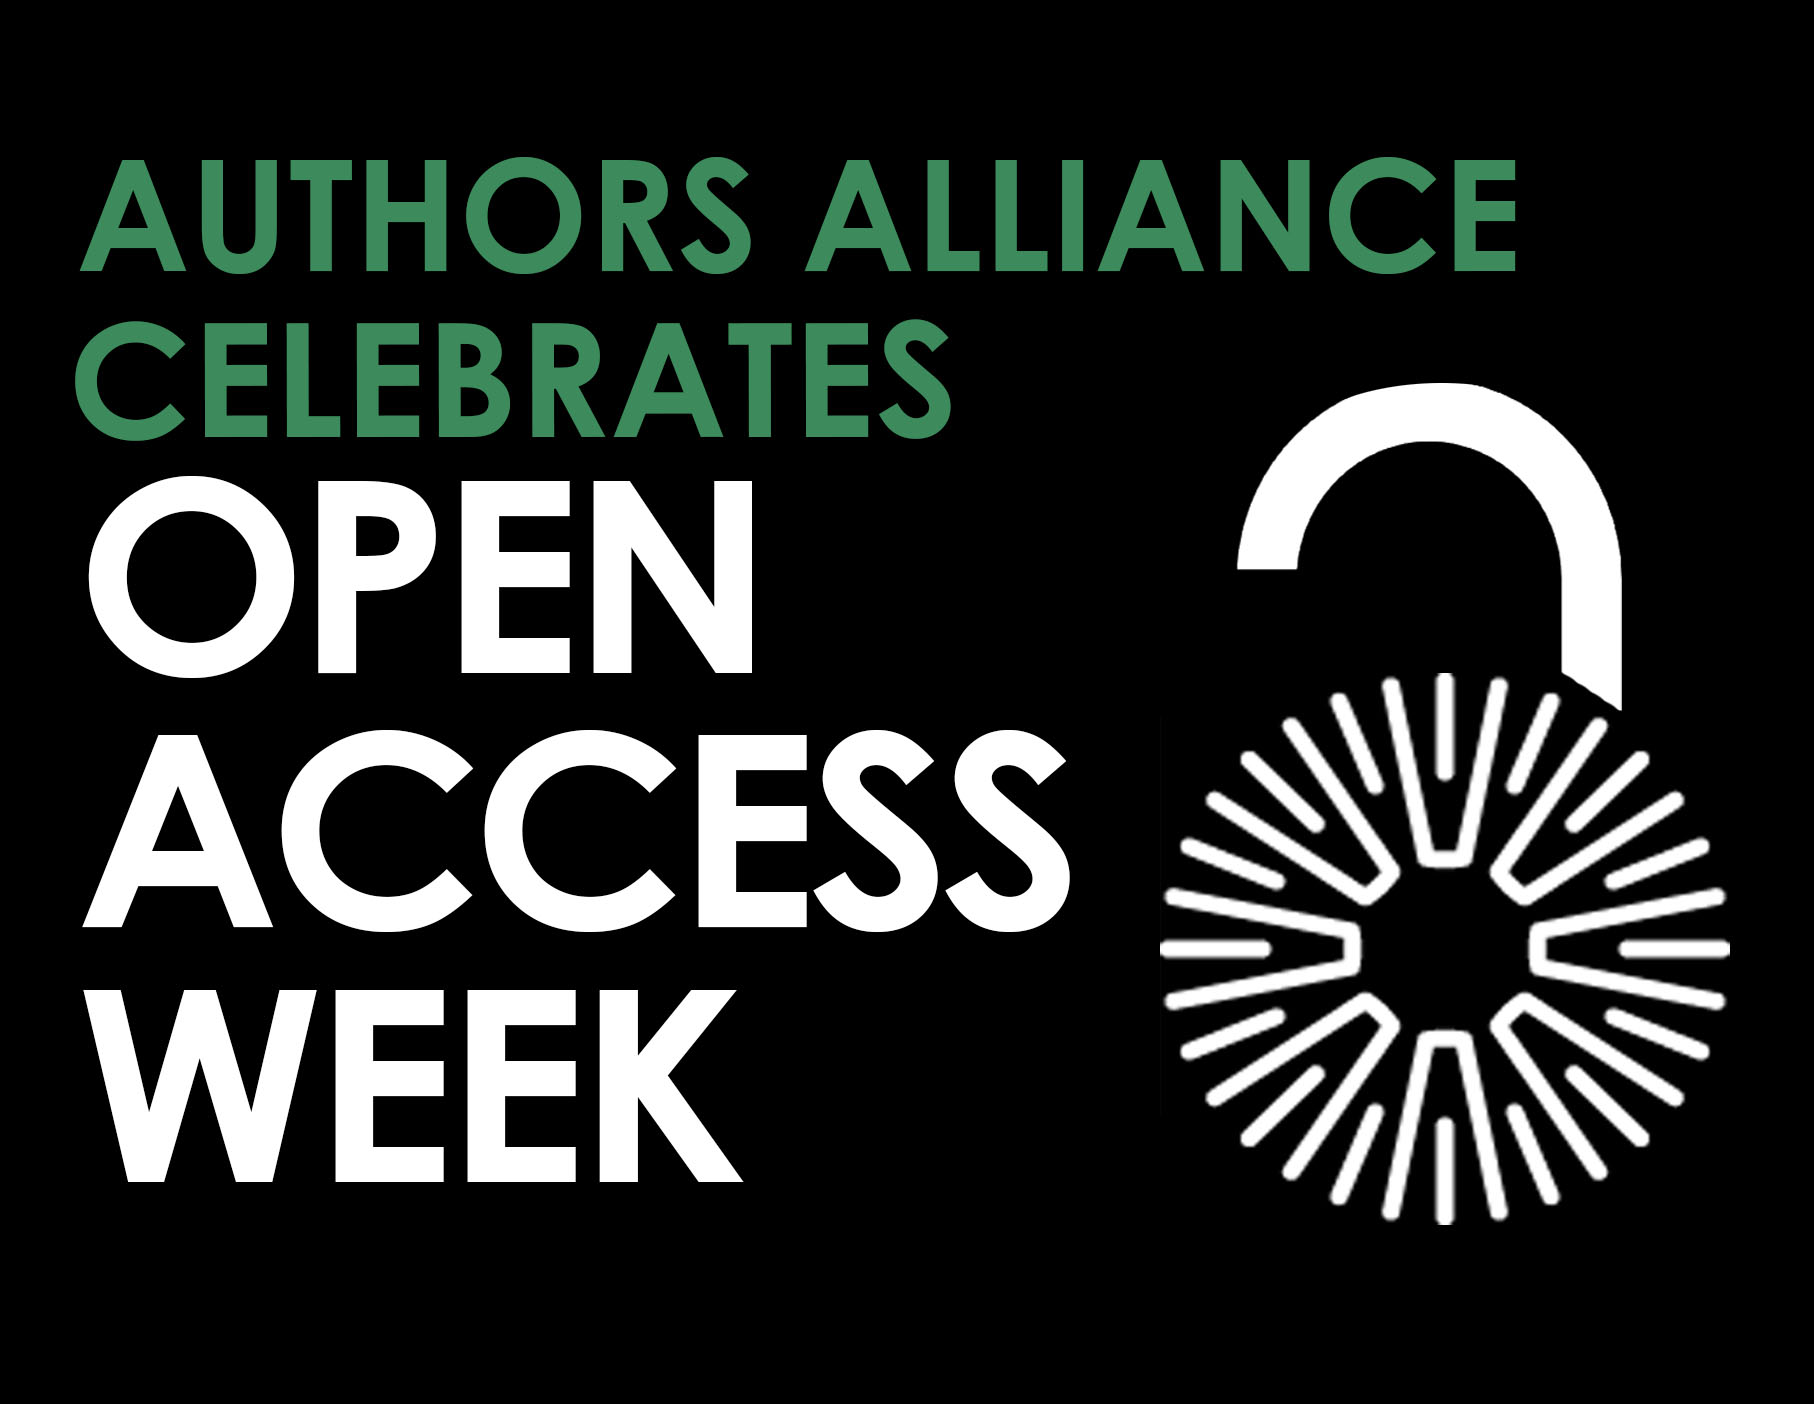 This Open Access Week, learn about regaining rights with our new tool